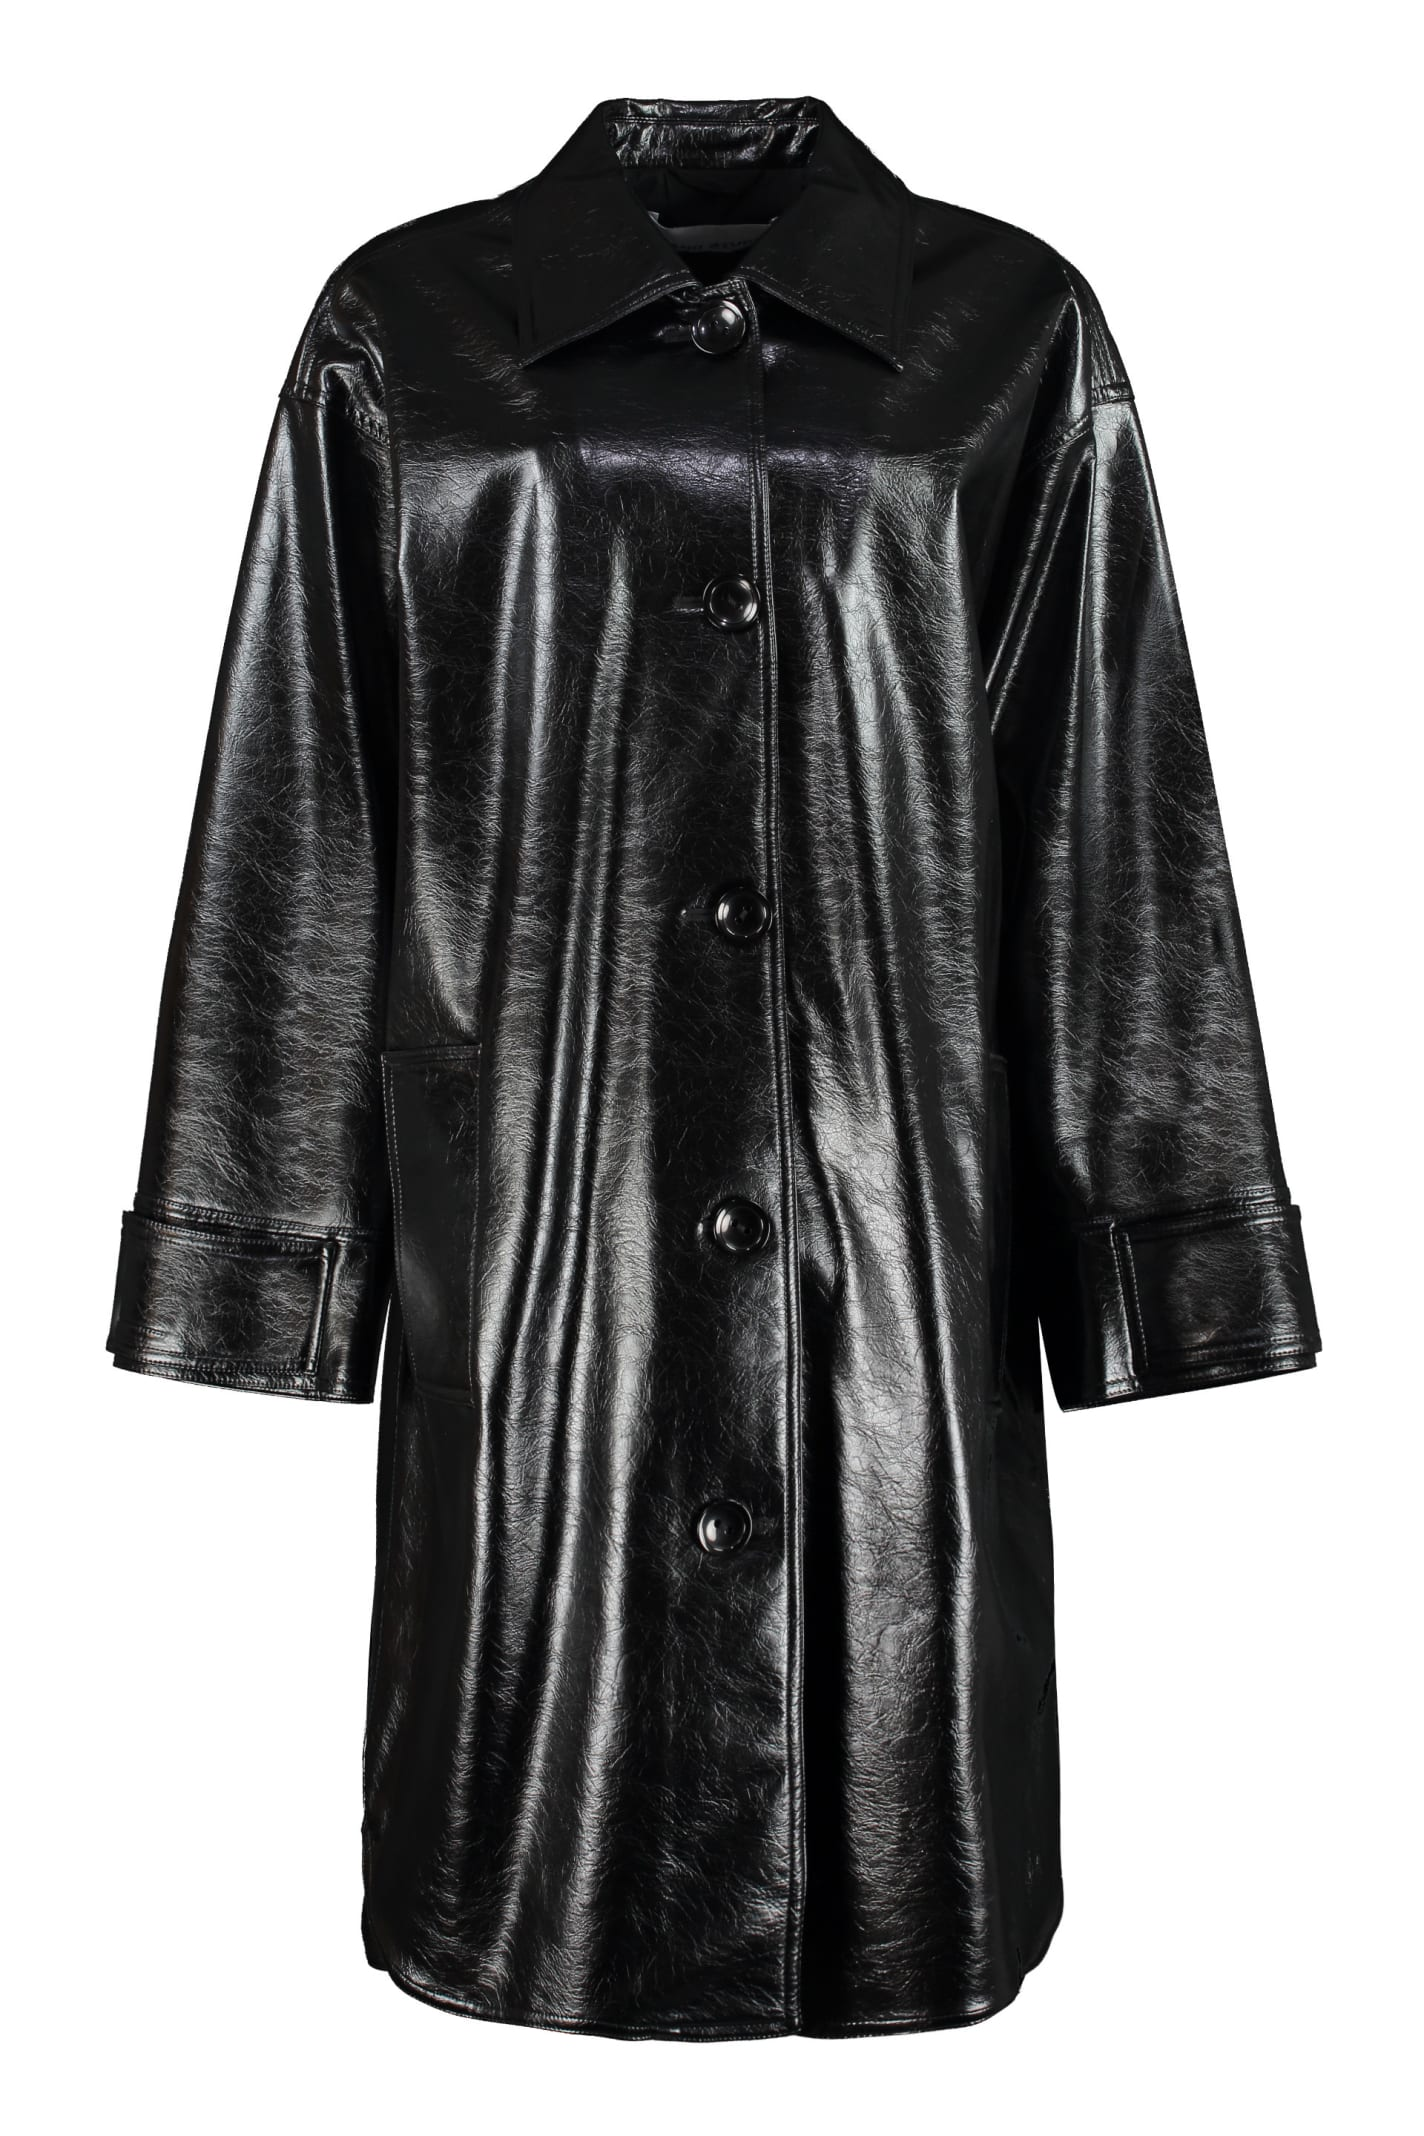 Stand Studio Coats KALI FAUX LEATHER COAT